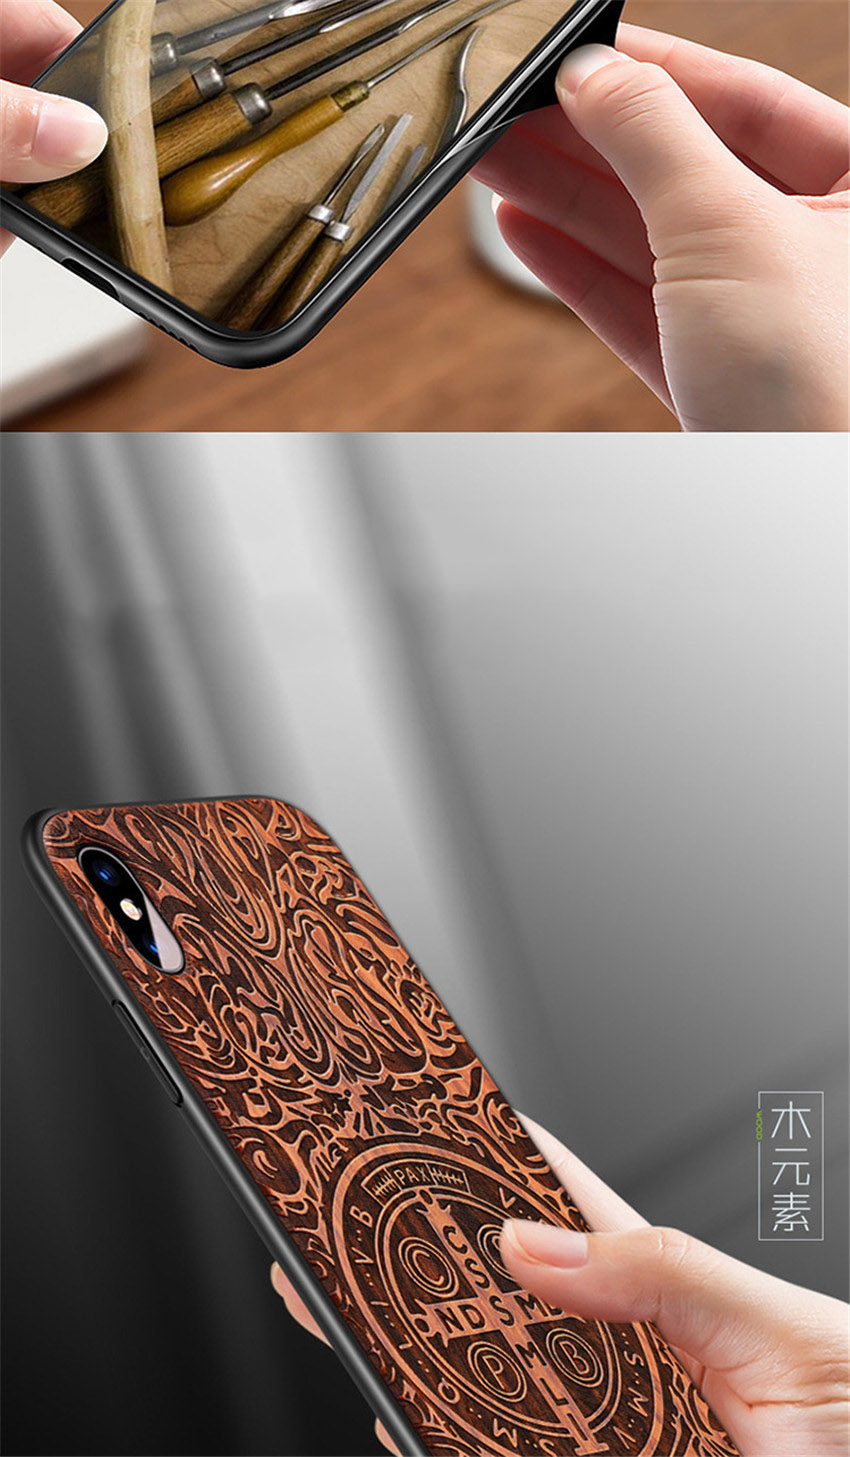 2018 New For iPhone XS Max Case Slim Wood Back Cover TPU Bumper Case For iPhone X iPhone XS Phone Cases (6)